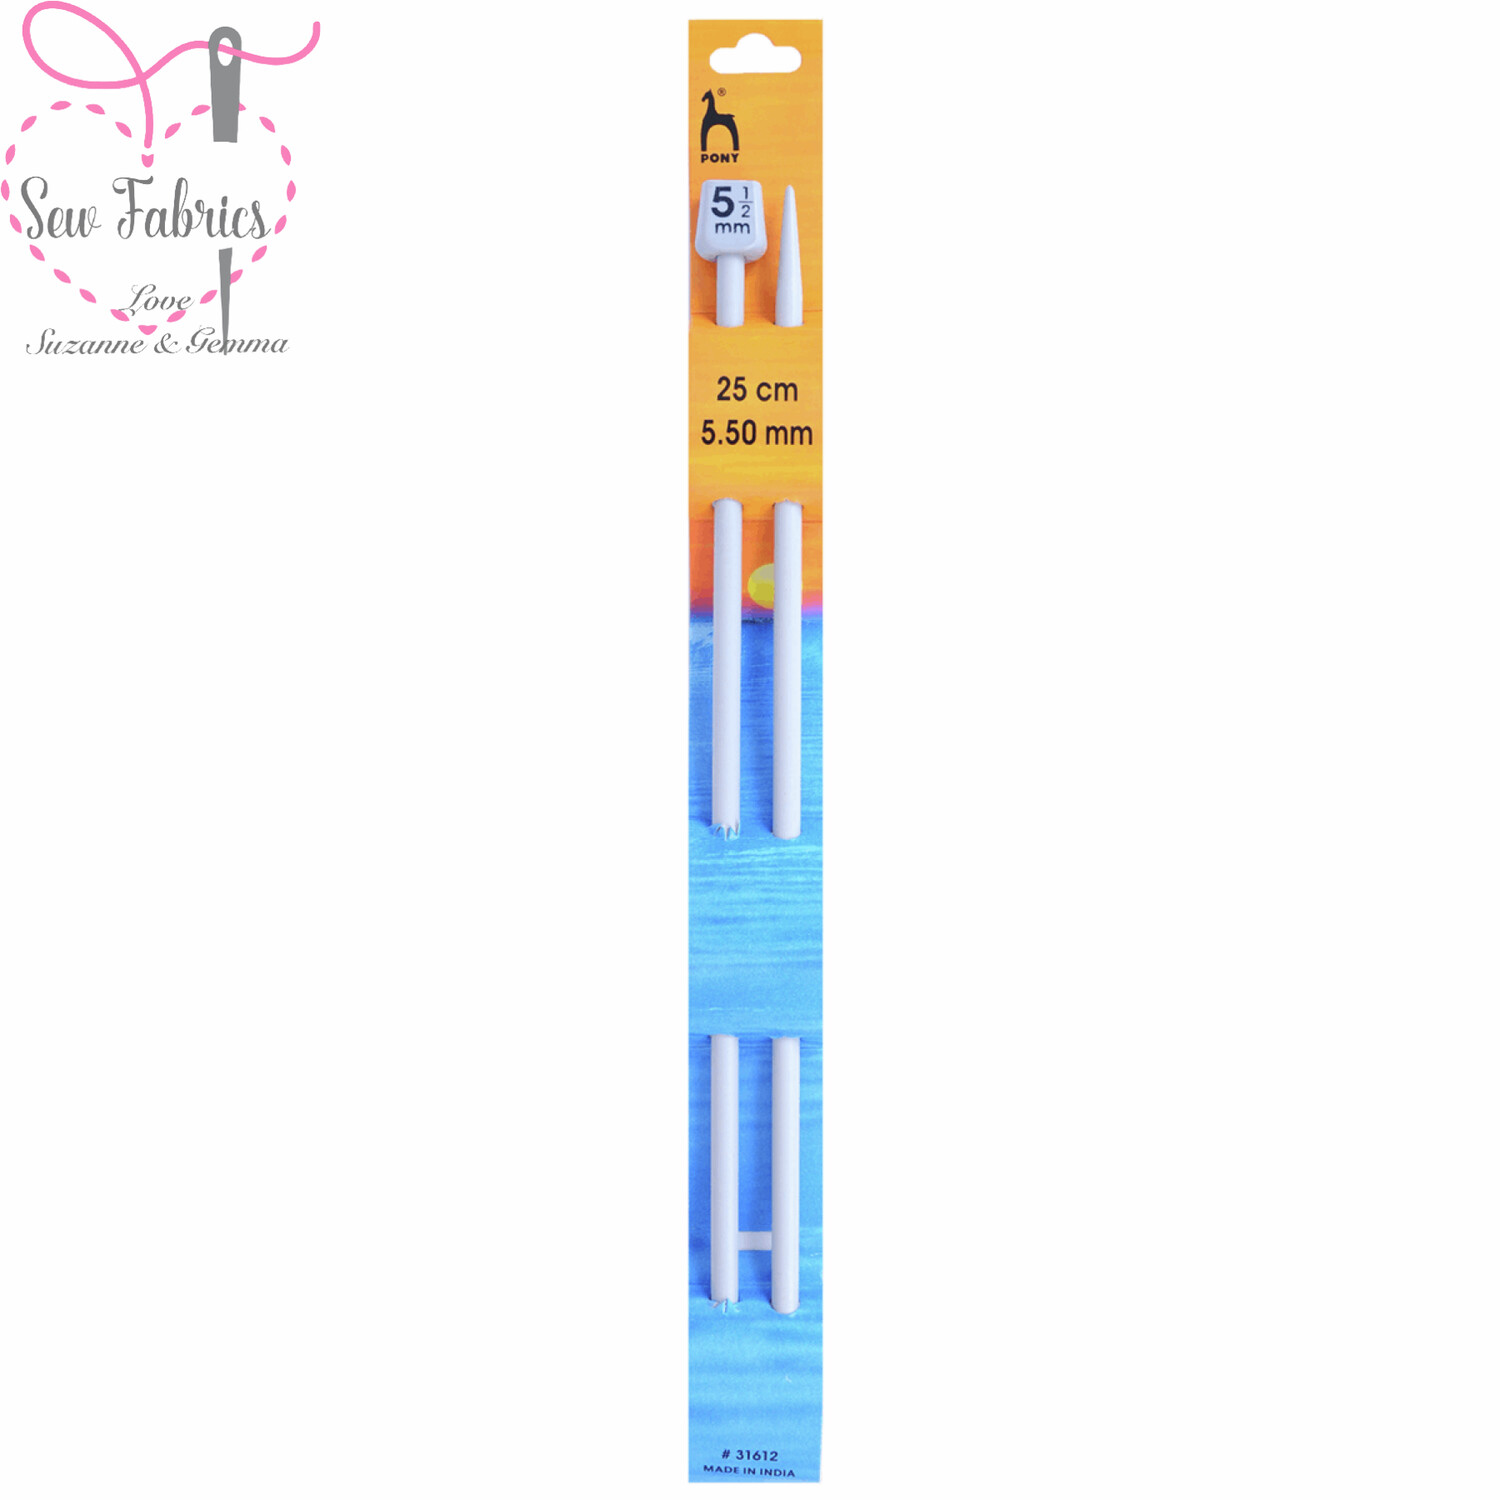 Pony Single Ended 25cm Classic Grey Knitting Needles / Pins in Size 5.5mm. Smooth Light Knitting Needles.